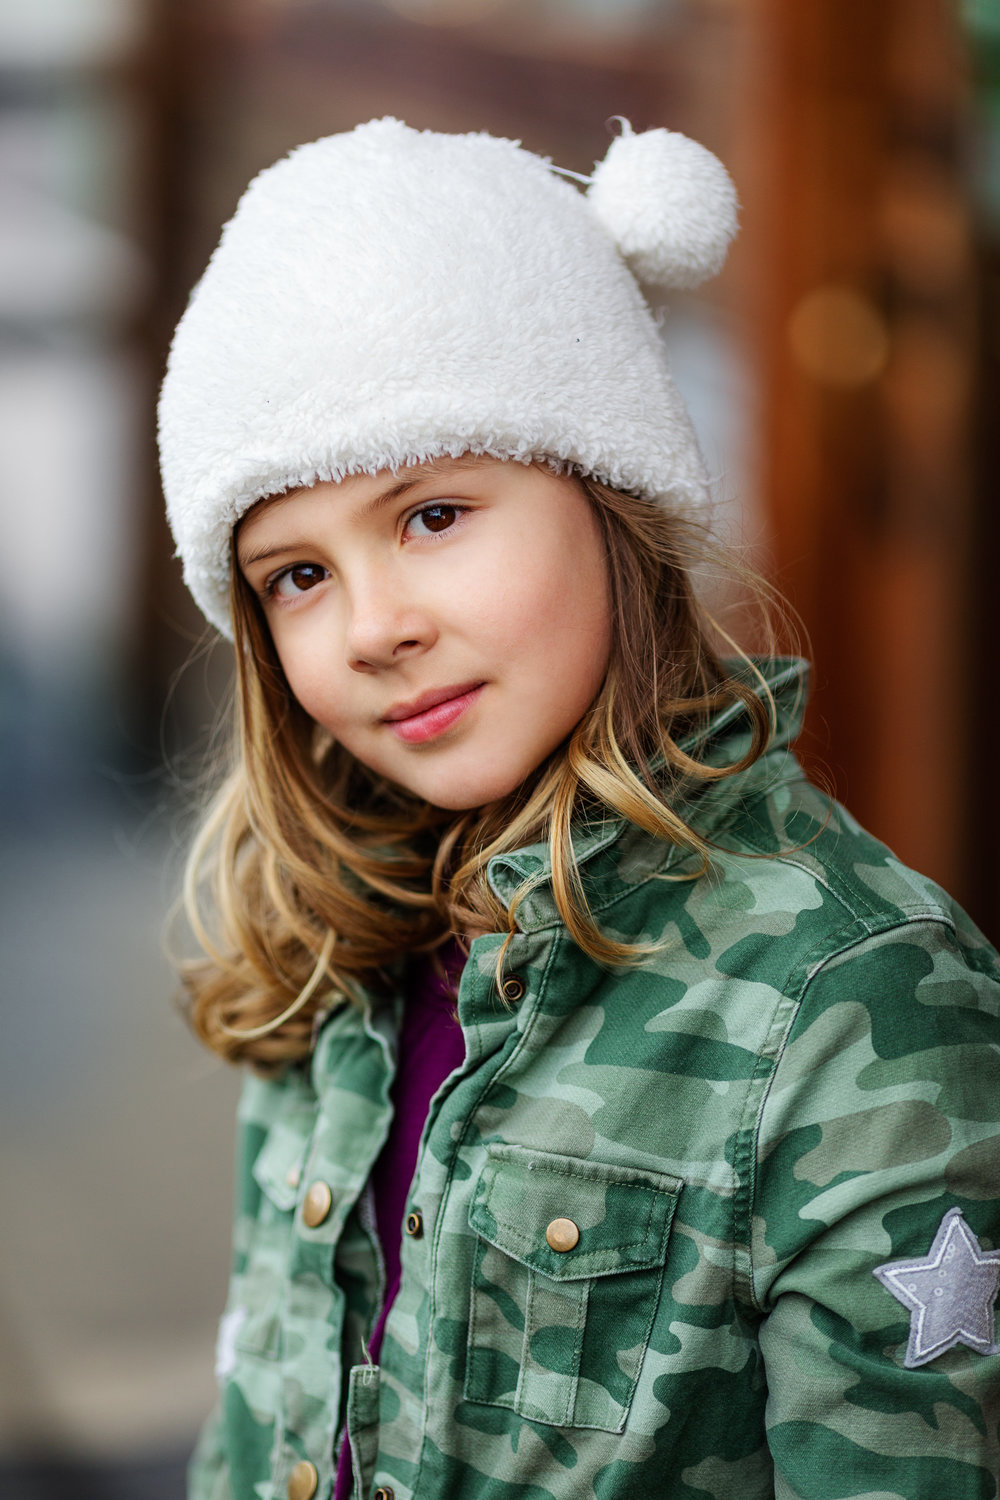 ariellanoellephotography-seattle-area-children-headshots-child-portraiture-actor-model-bellevue-kirkland-redmond-1-2.jpg